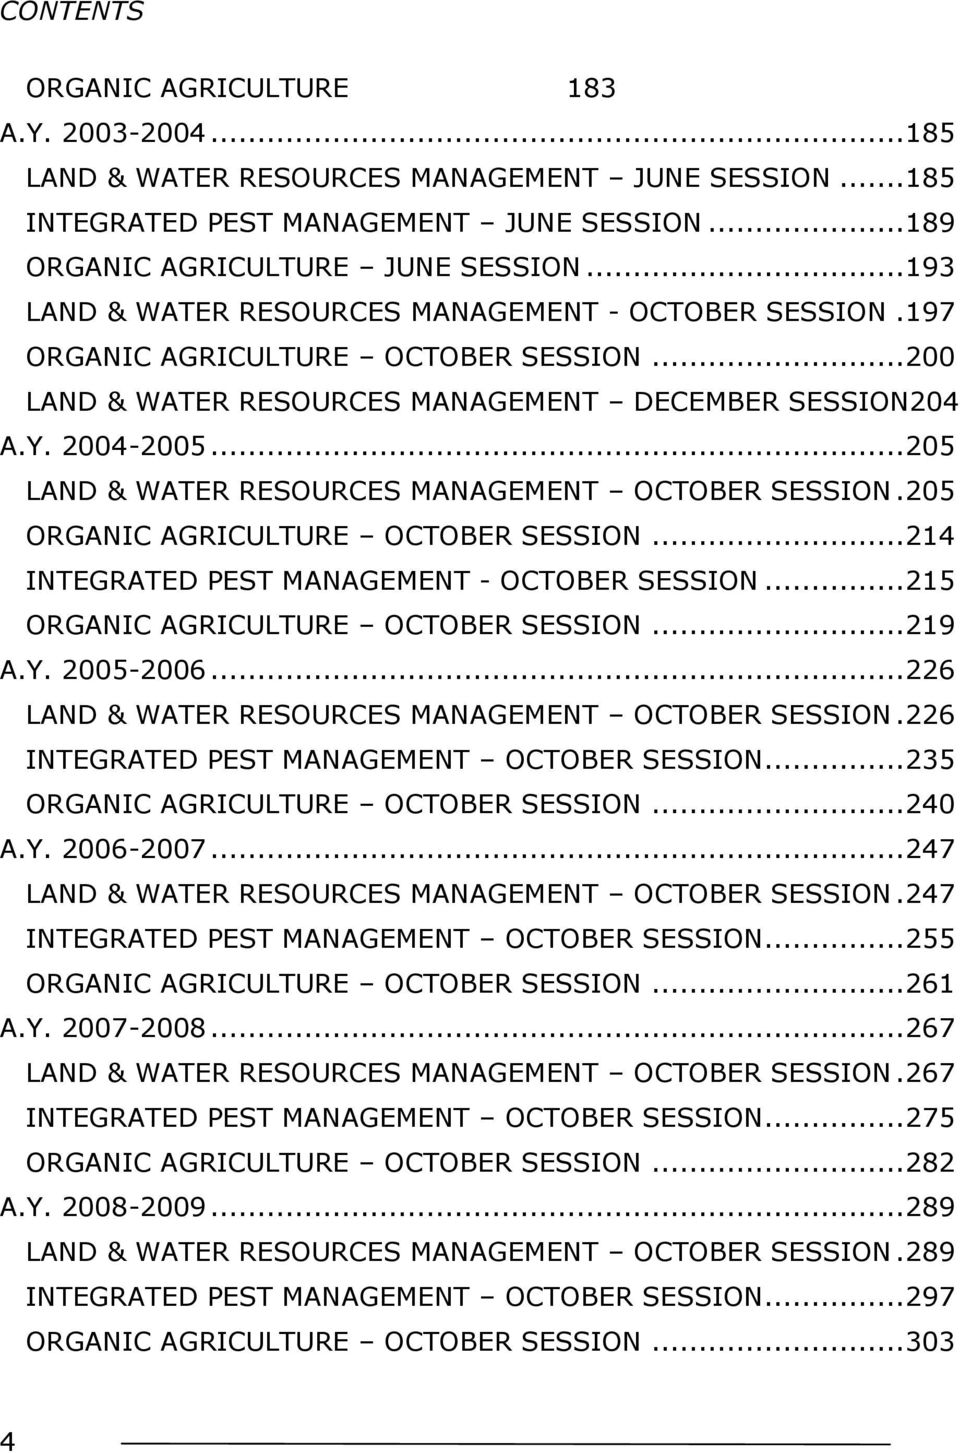 .. 205 LAND & WATER RESOURCES MANAGEMENT OCTOBER SESSION. 205 ORGANIC AGRICULTURE OCTOBER SESSION... 214 INTEGRATED PEST MANAGEMENT - OCTOBER SESSION... 215 ORGANIC AGRICULTURE OCTOBER SESSION... 219 A.